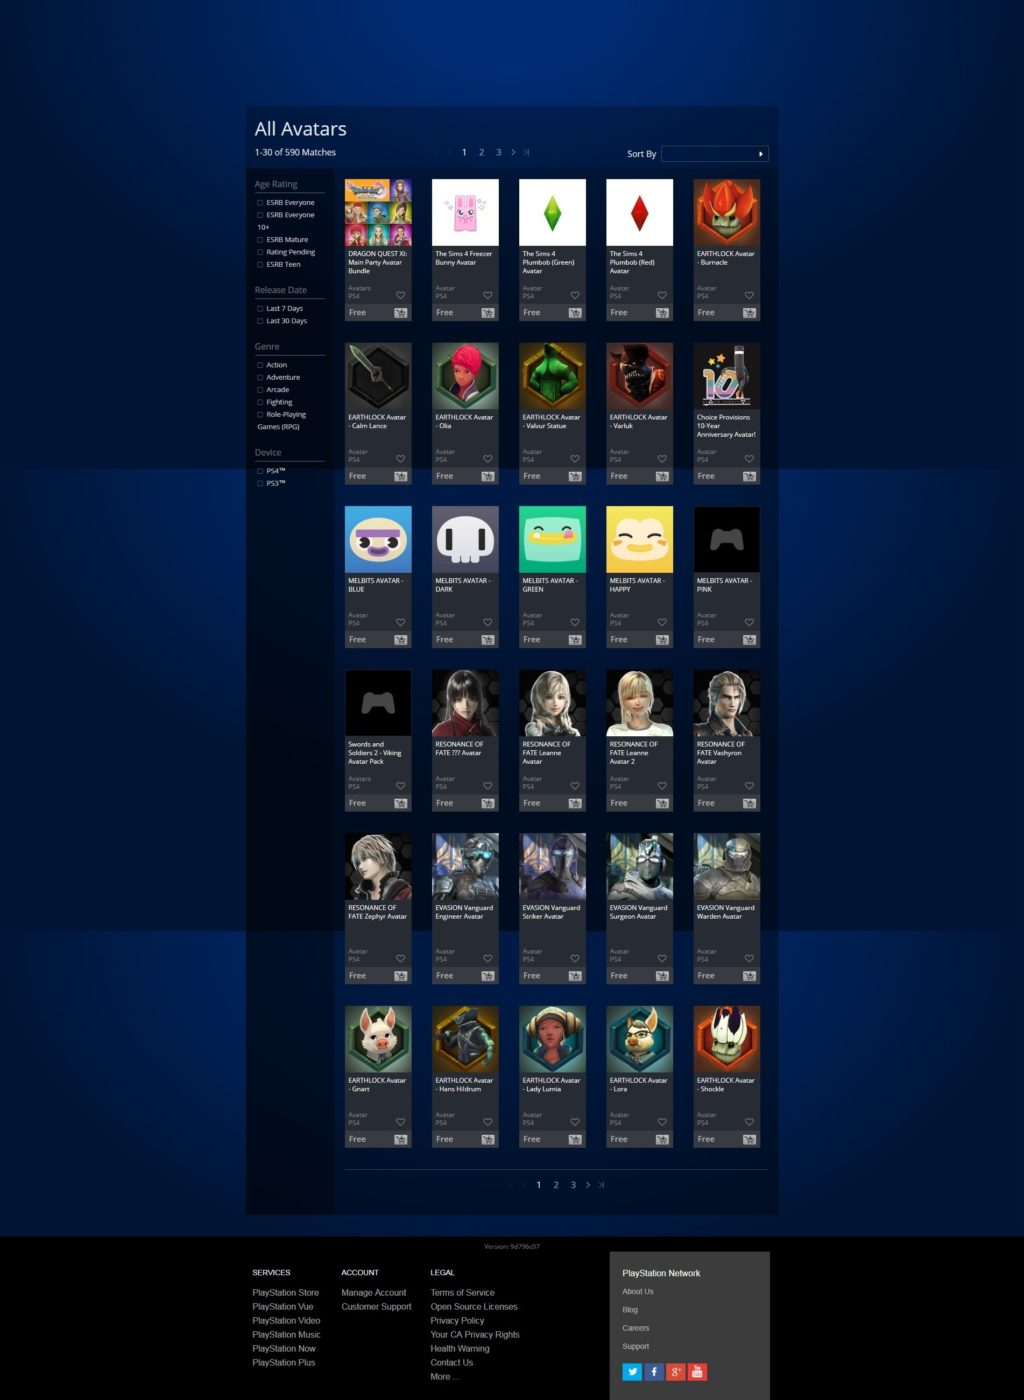 Here's the Complete 20-Page List of Free PS4 Avatars and How to Get